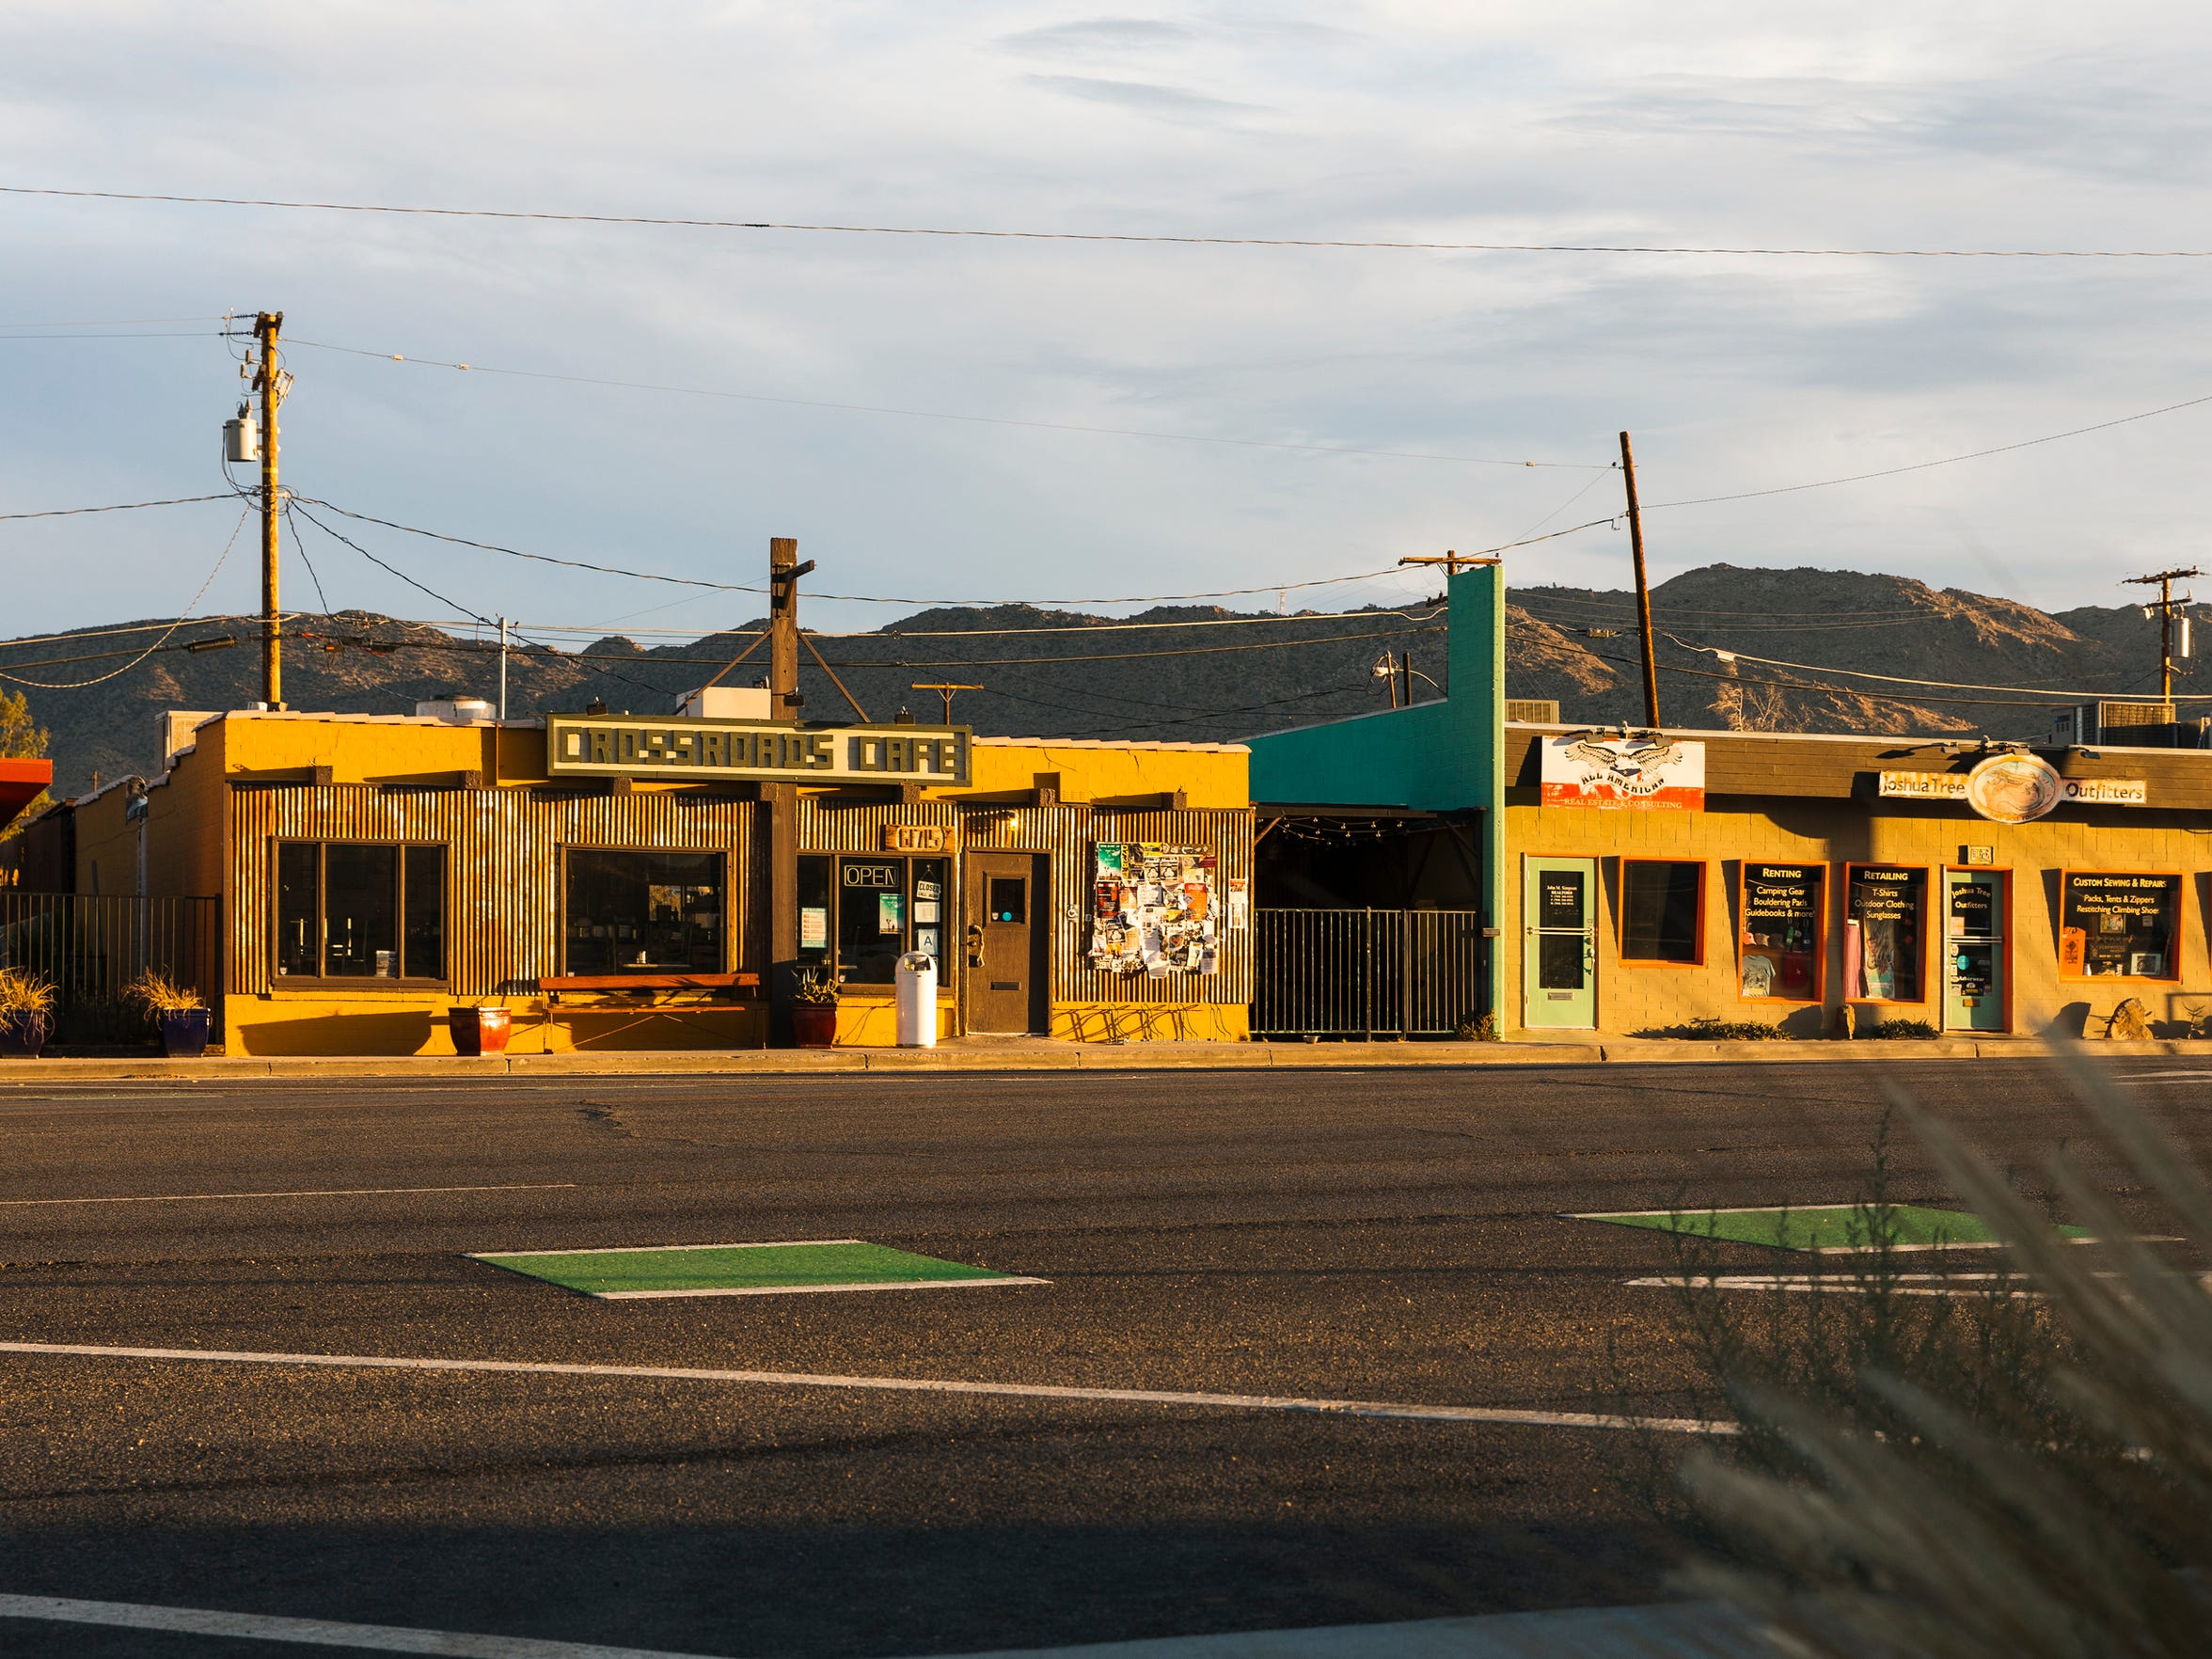 Crossroads Cafe in downtown Joshua Tree